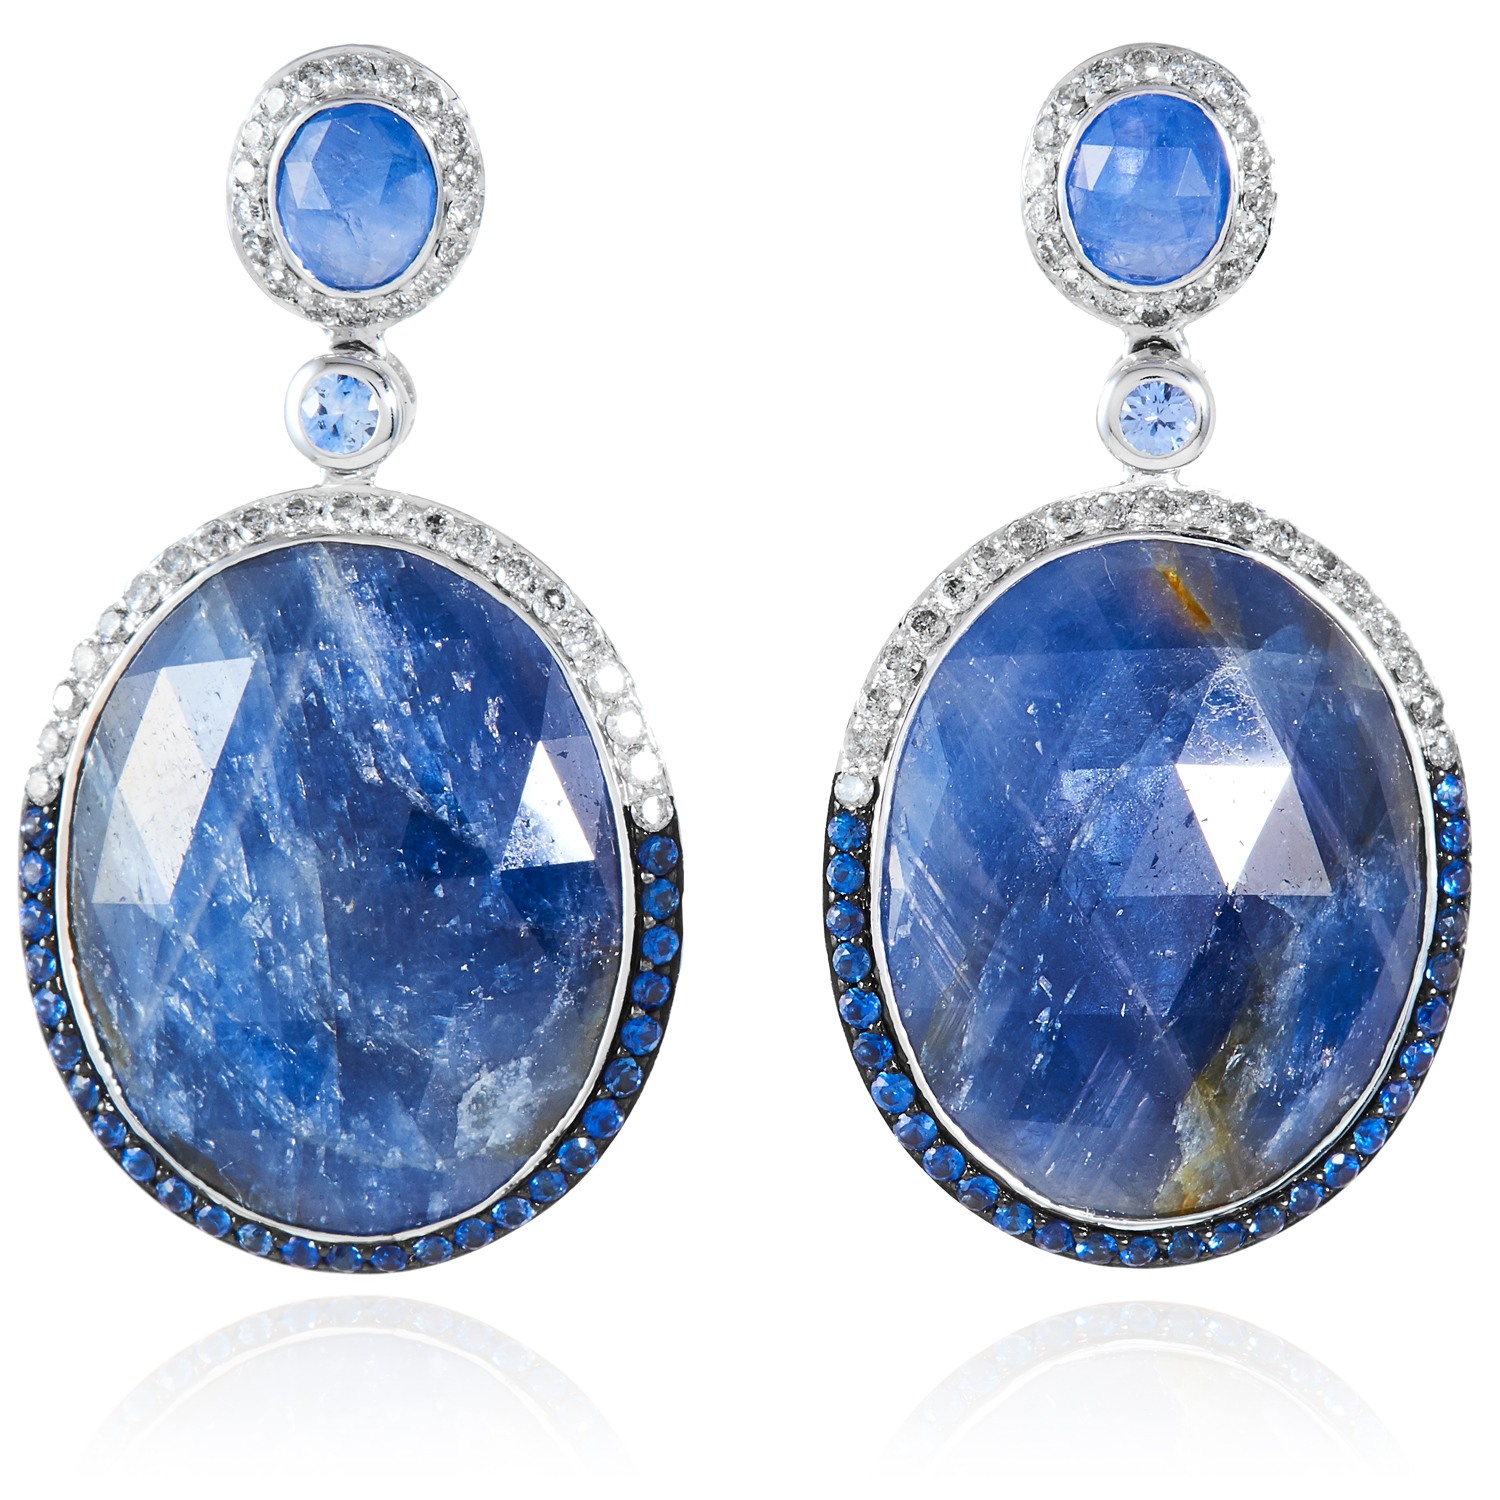 A PAIR OF SAPPHIRE AND DIAMOND EARRINGS in 18ct white gold, each set with a large oval rose cut